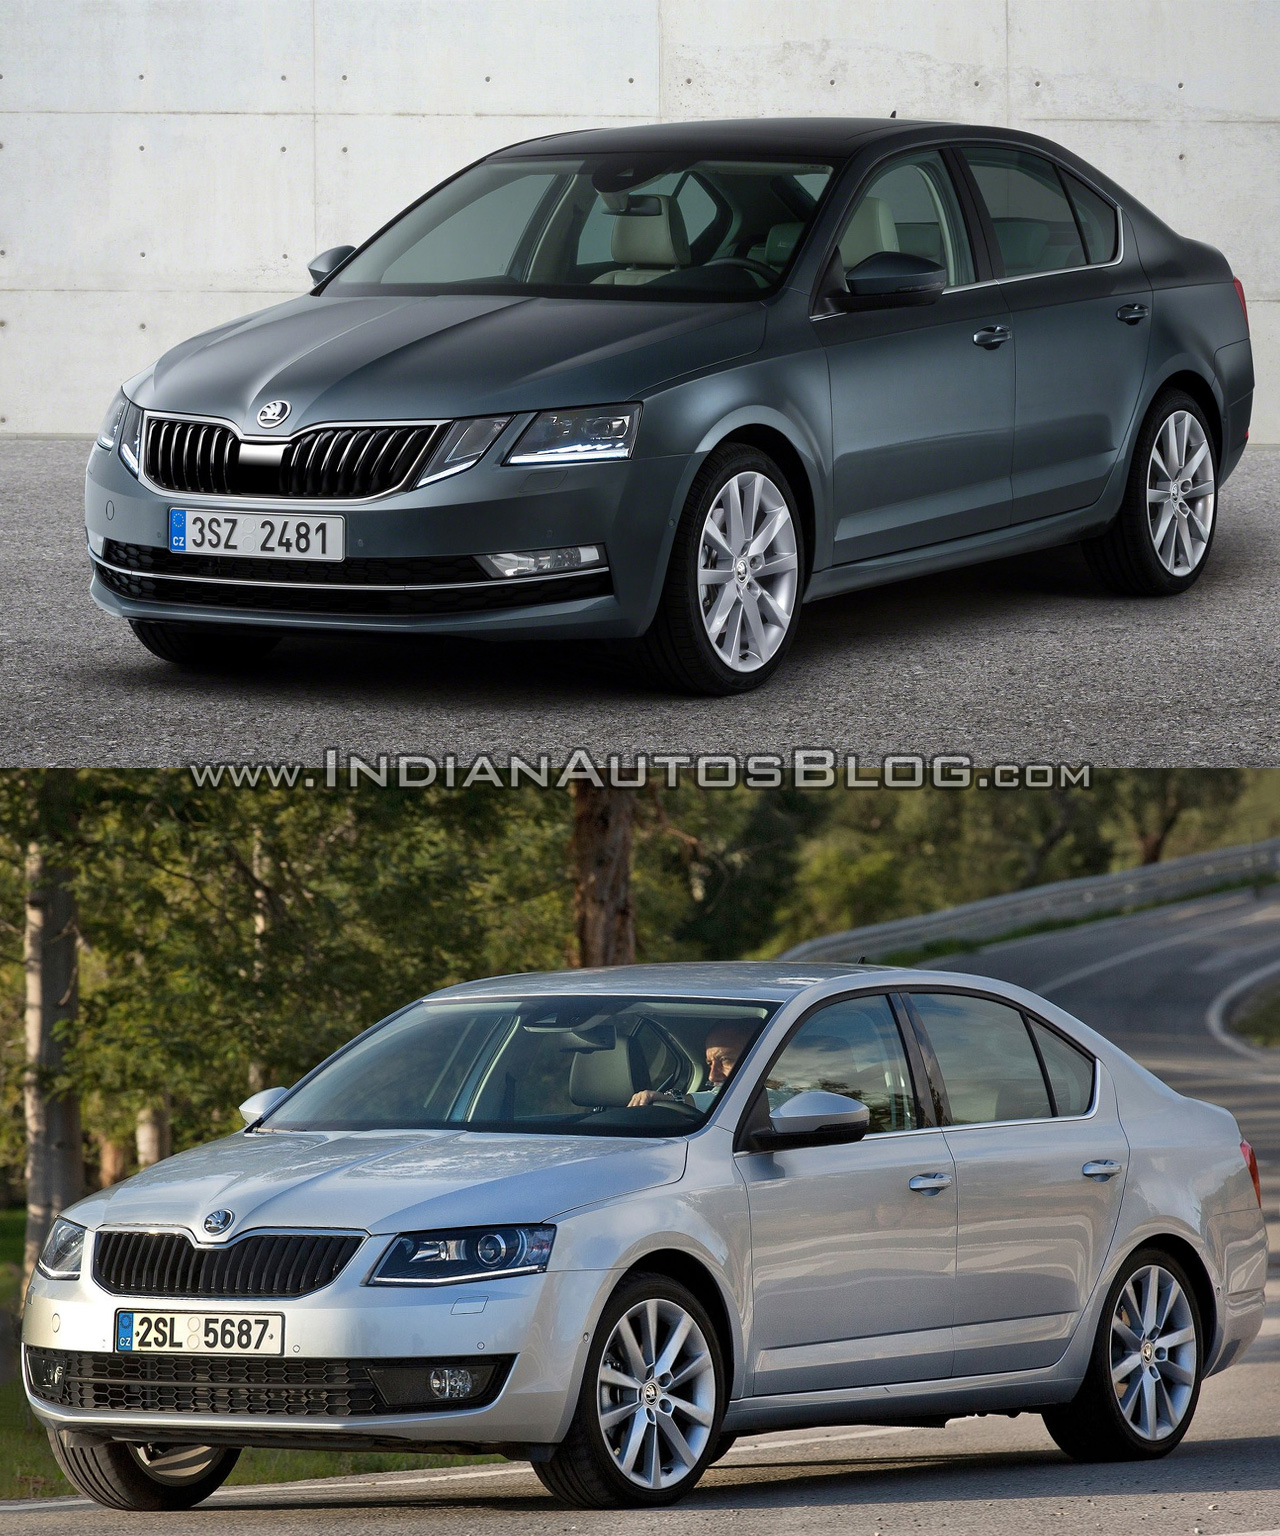 2017 skoda octavia vs 2014 skoda octavia in images. Black Bedroom Furniture Sets. Home Design Ideas